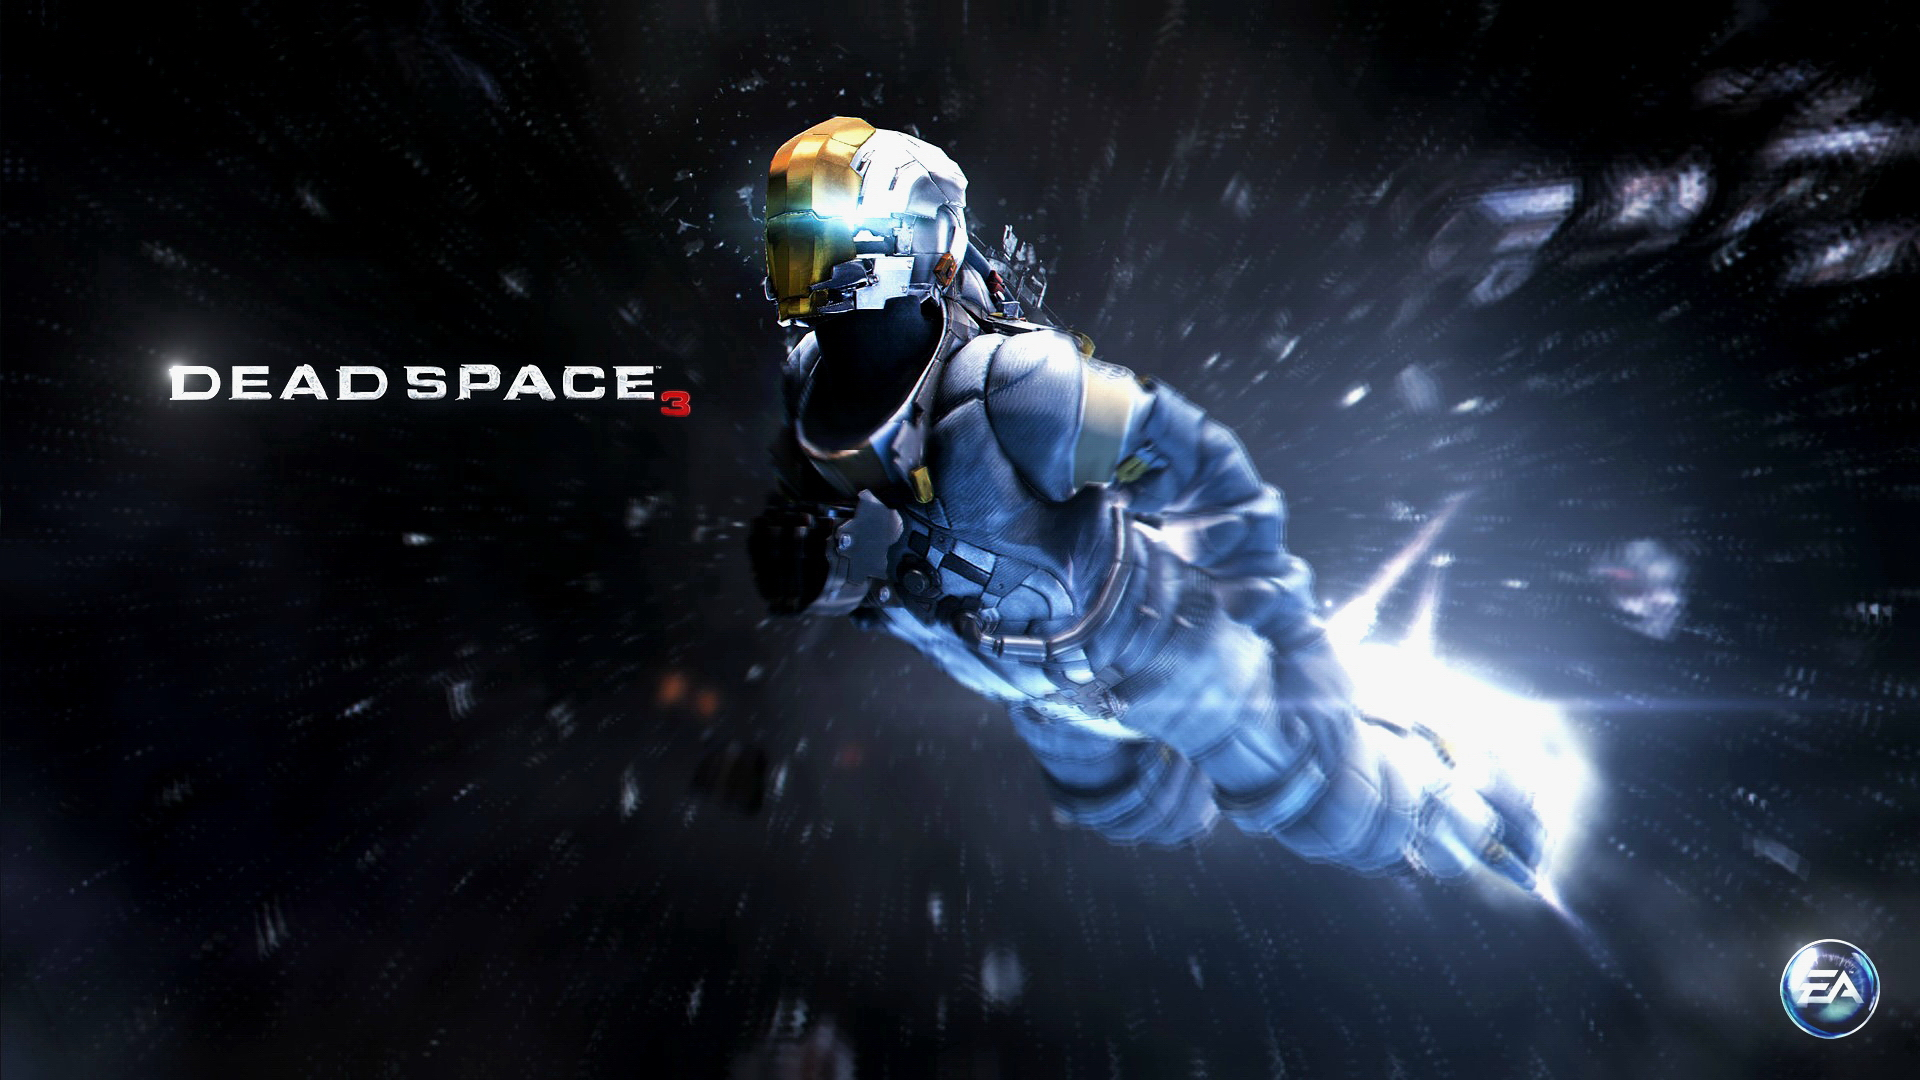 Dead Space 3 Video Game 605.61 Kb